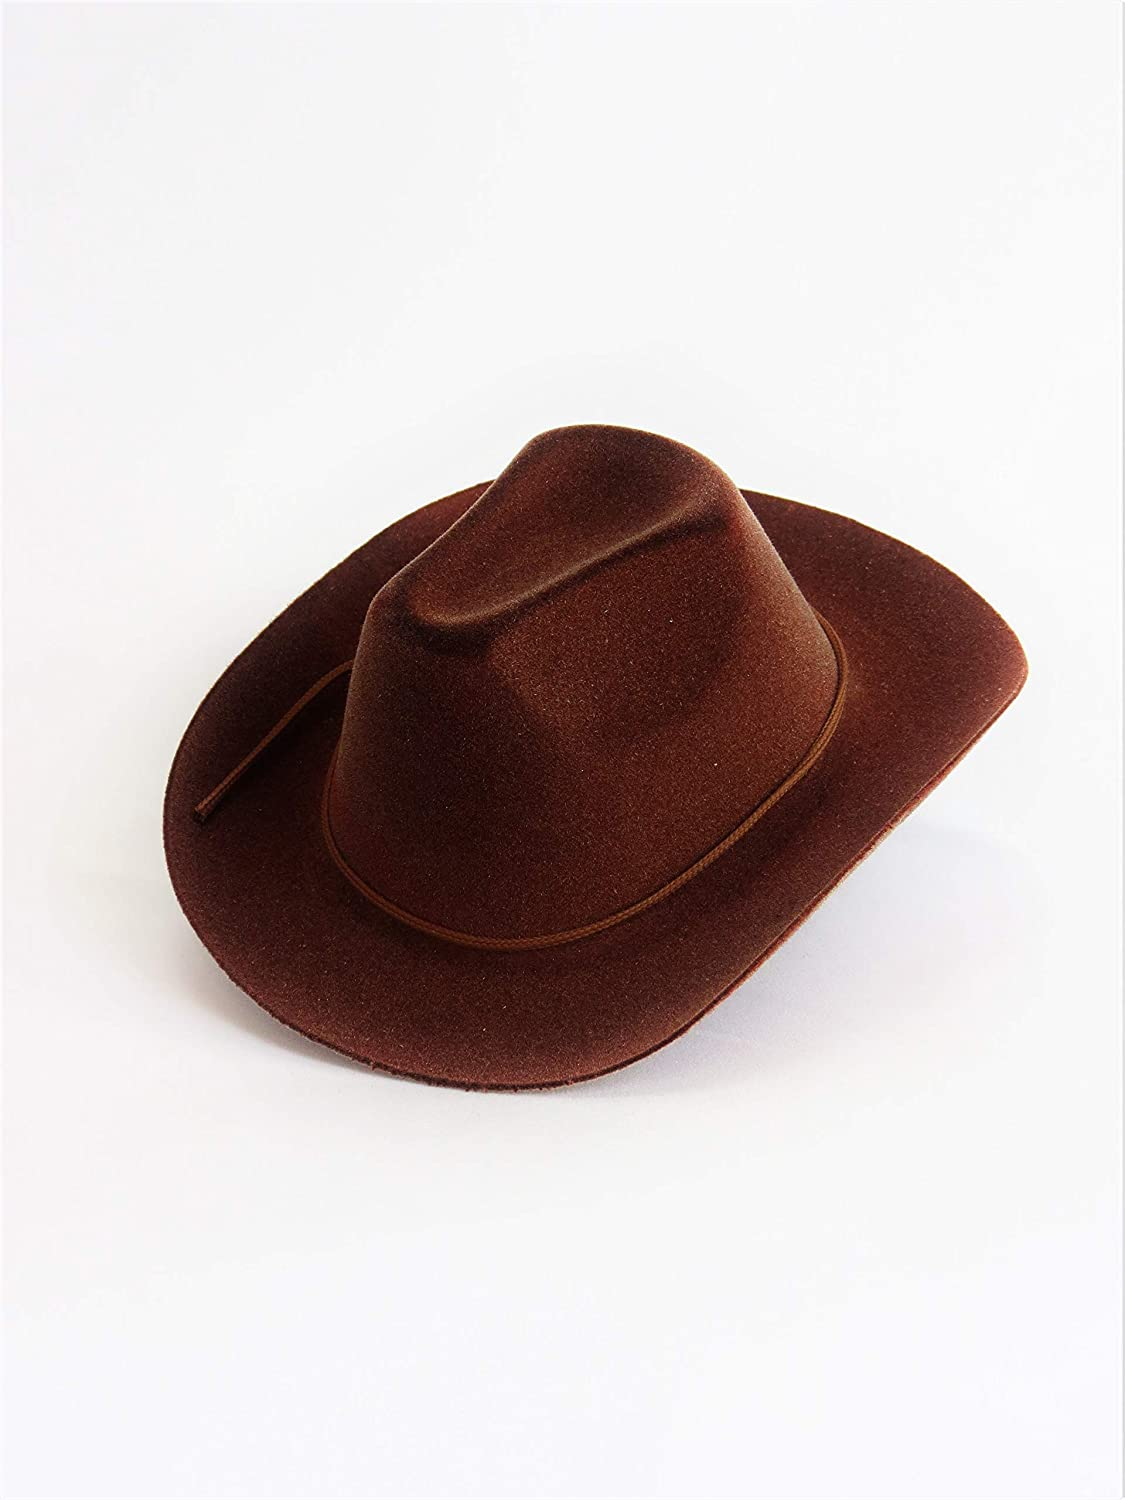 Color Dogs Red Dog Trend Printing Cowboy Hat Fashion Baseball Cap for Men and Women Black and White